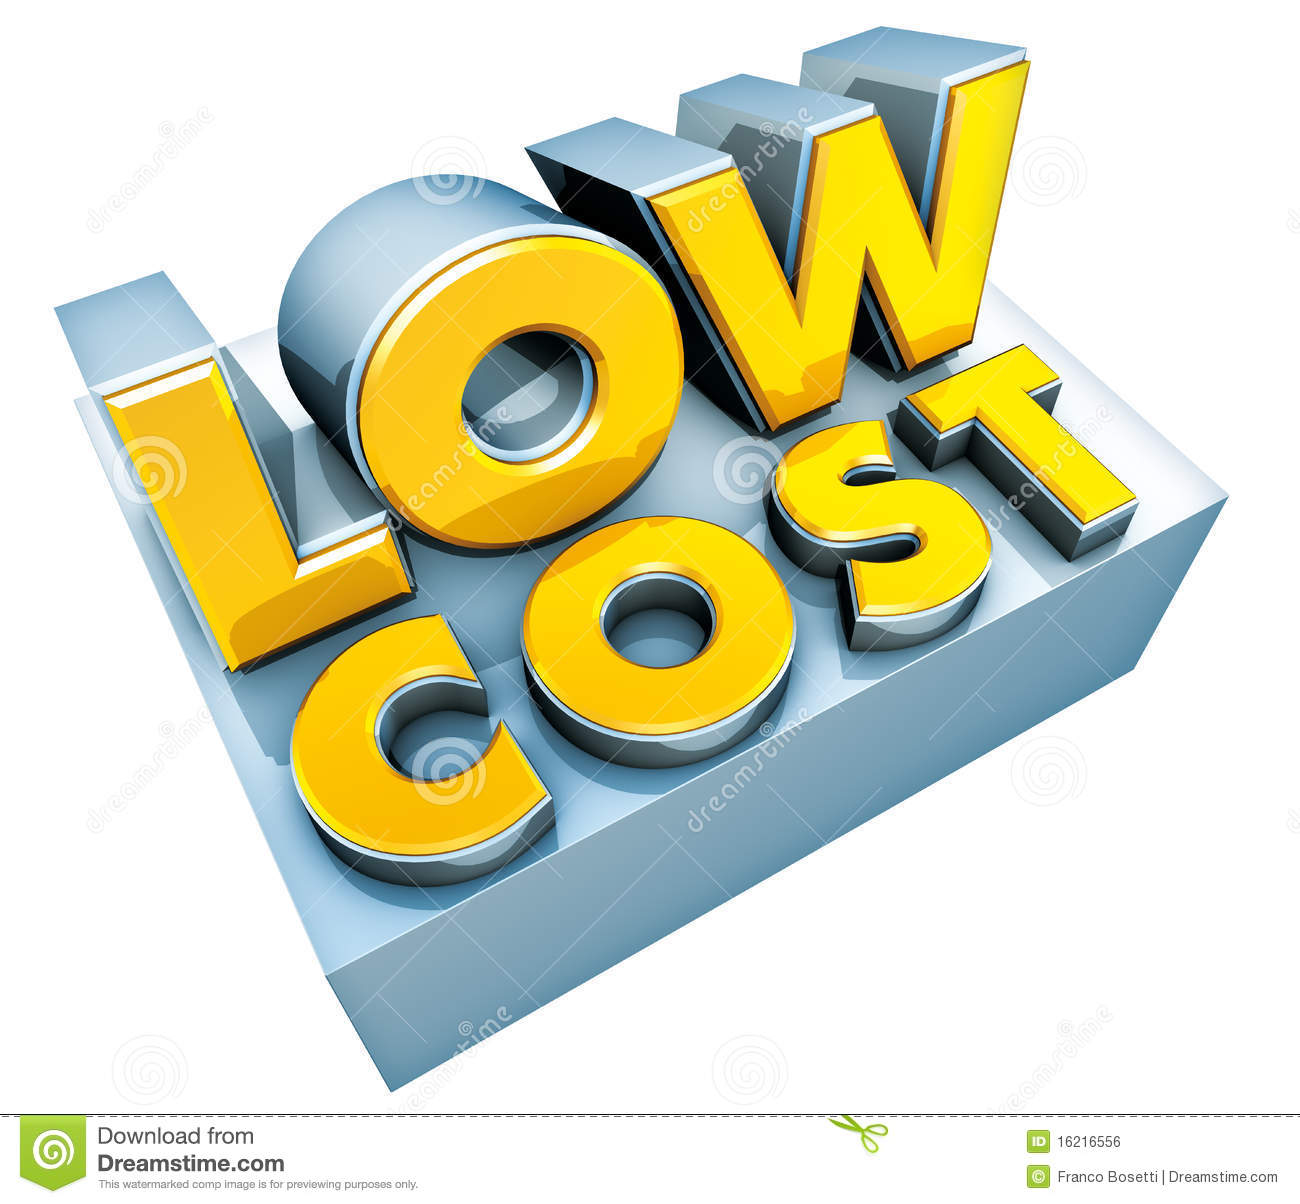 ... illustration low cost words 3d for advertising mr no pr no 3 2959 6: www.dreamstime.com/royalty-free-stock-image-low-cost-image16216556